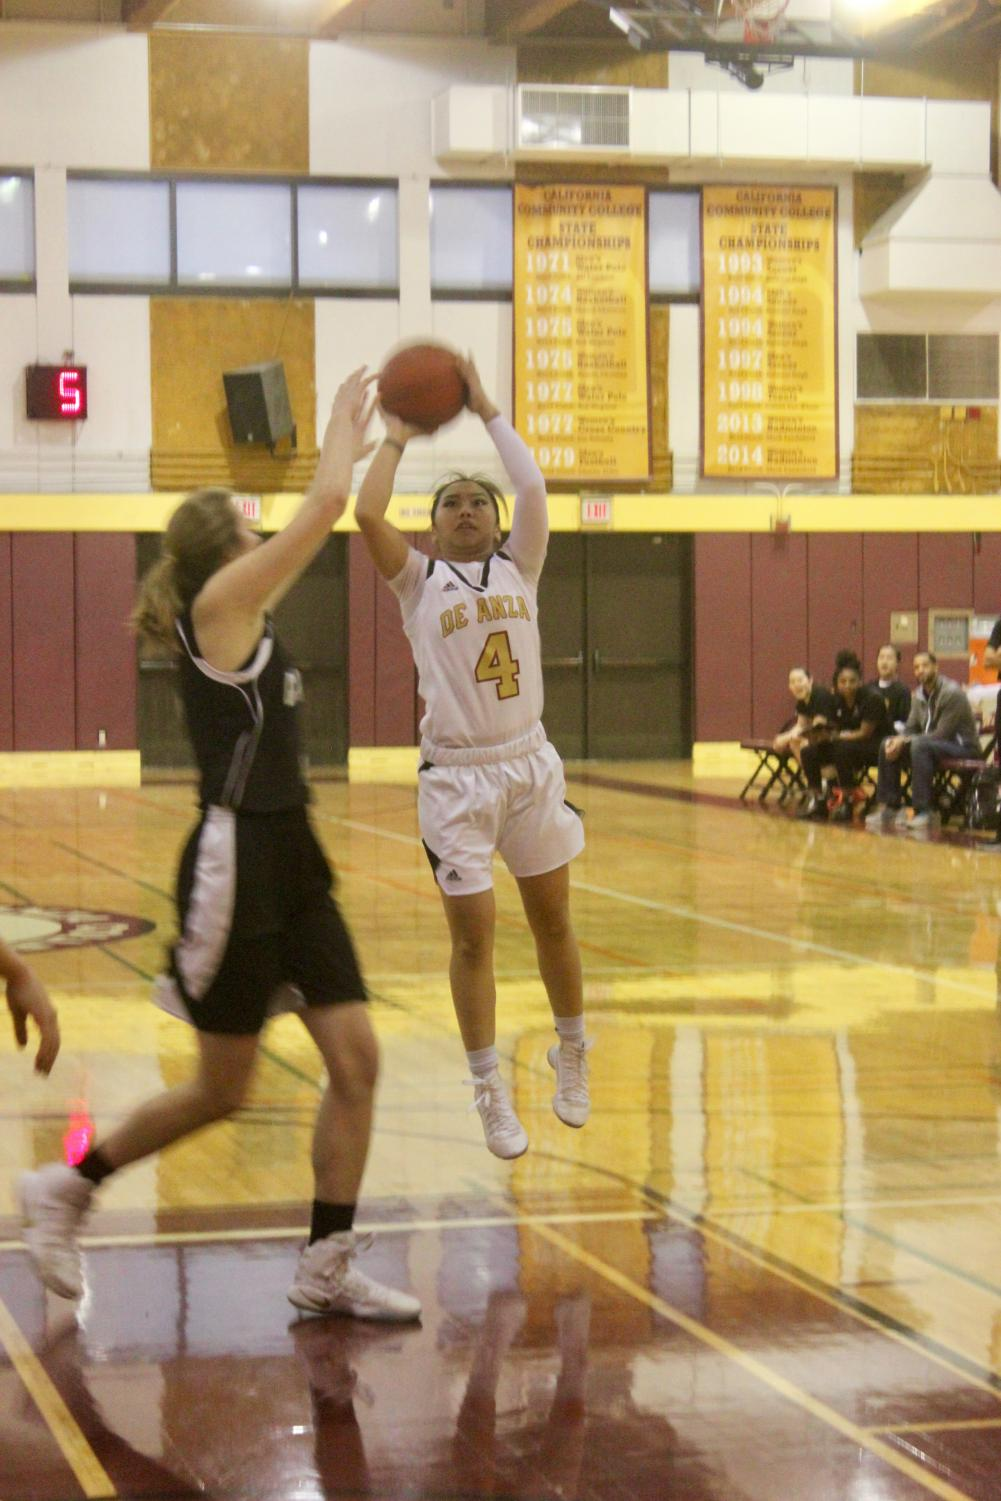 Guard, Doryn Gomez attempts a two-pointer during the De Anza Colleg Dons game against the Cabrillo Seahawks on Wednesday, Jan. 19. The Dons lost 80-43.